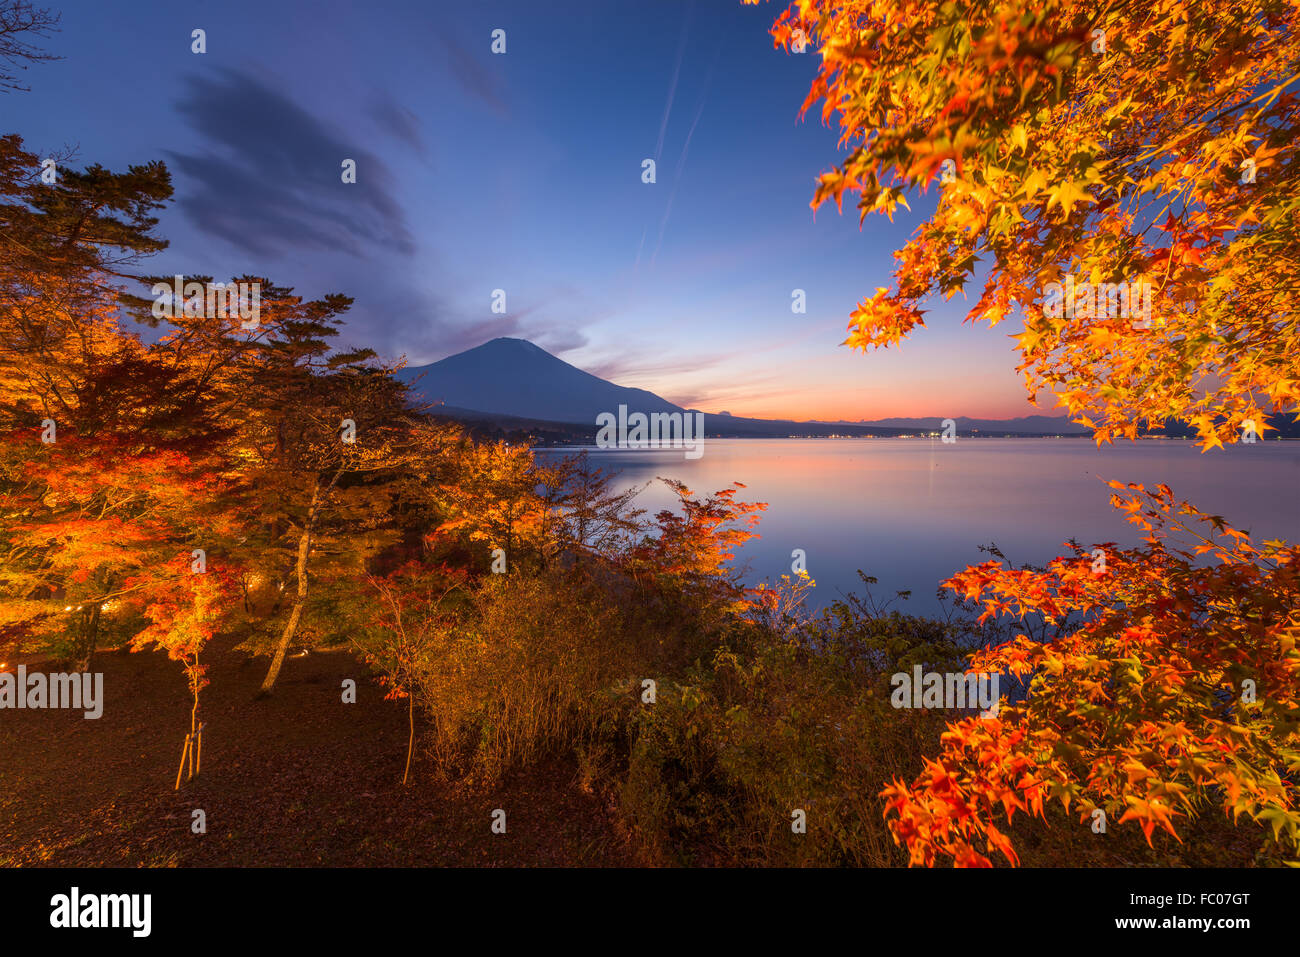 Mt. Fuji, le Japon au cours de l'automne de la rive du lac Yamanaka. Photo Stock